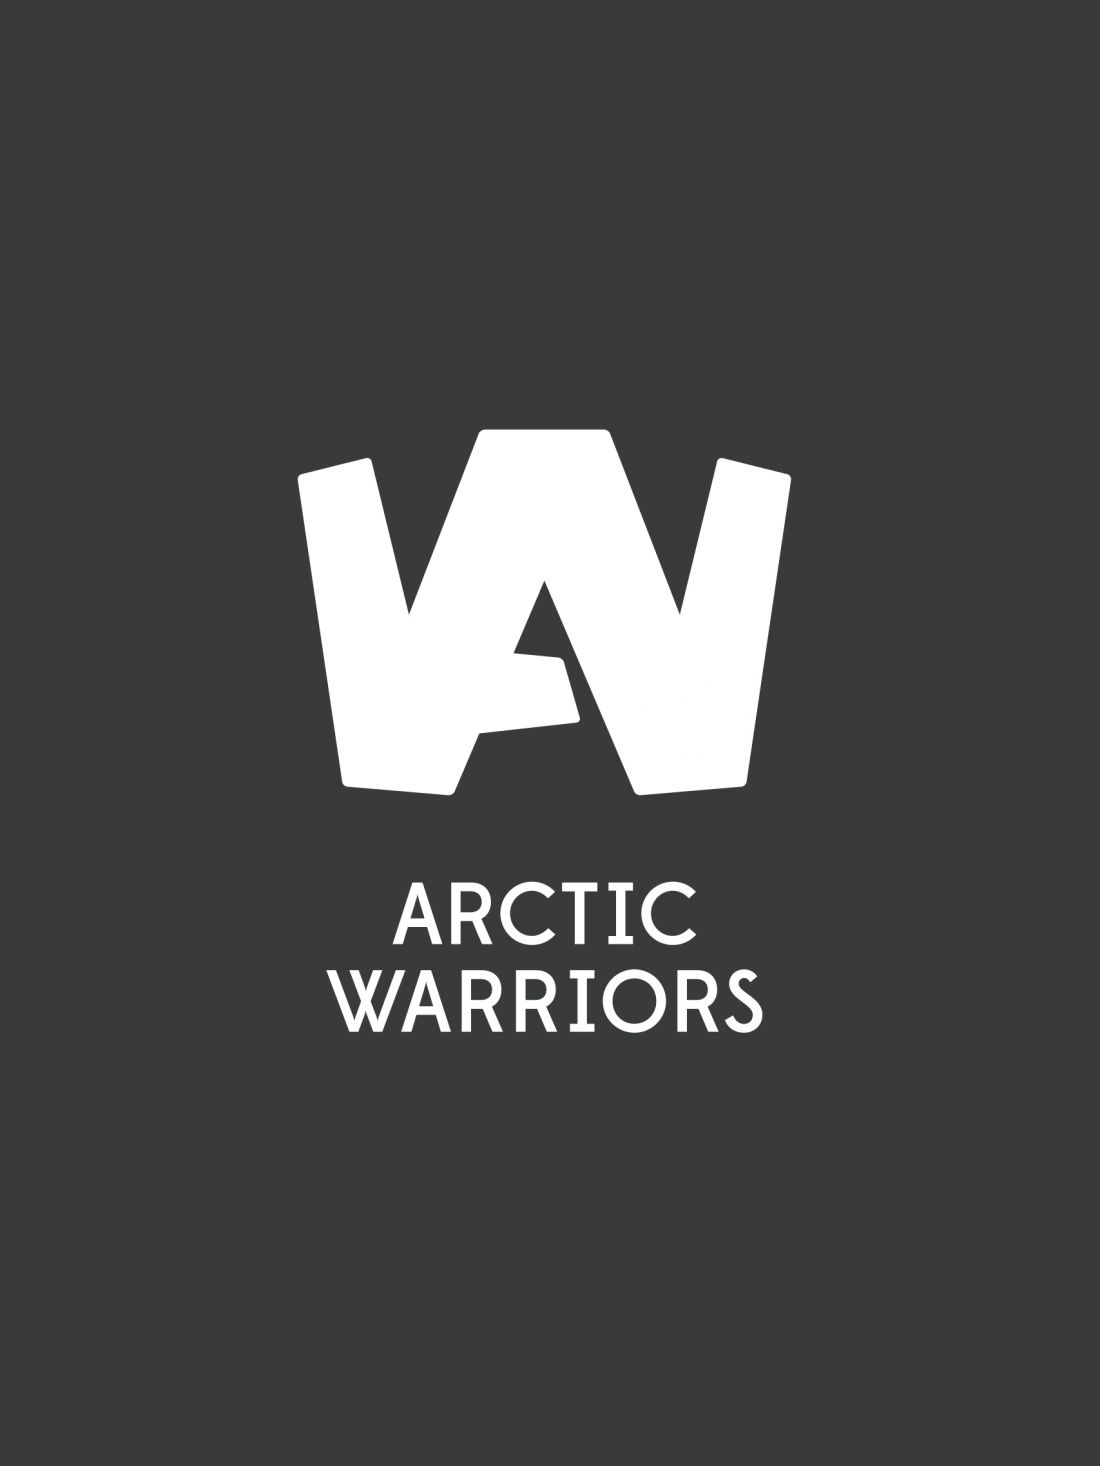 mainostoimisto_puisto_arctic_warriors.jpg